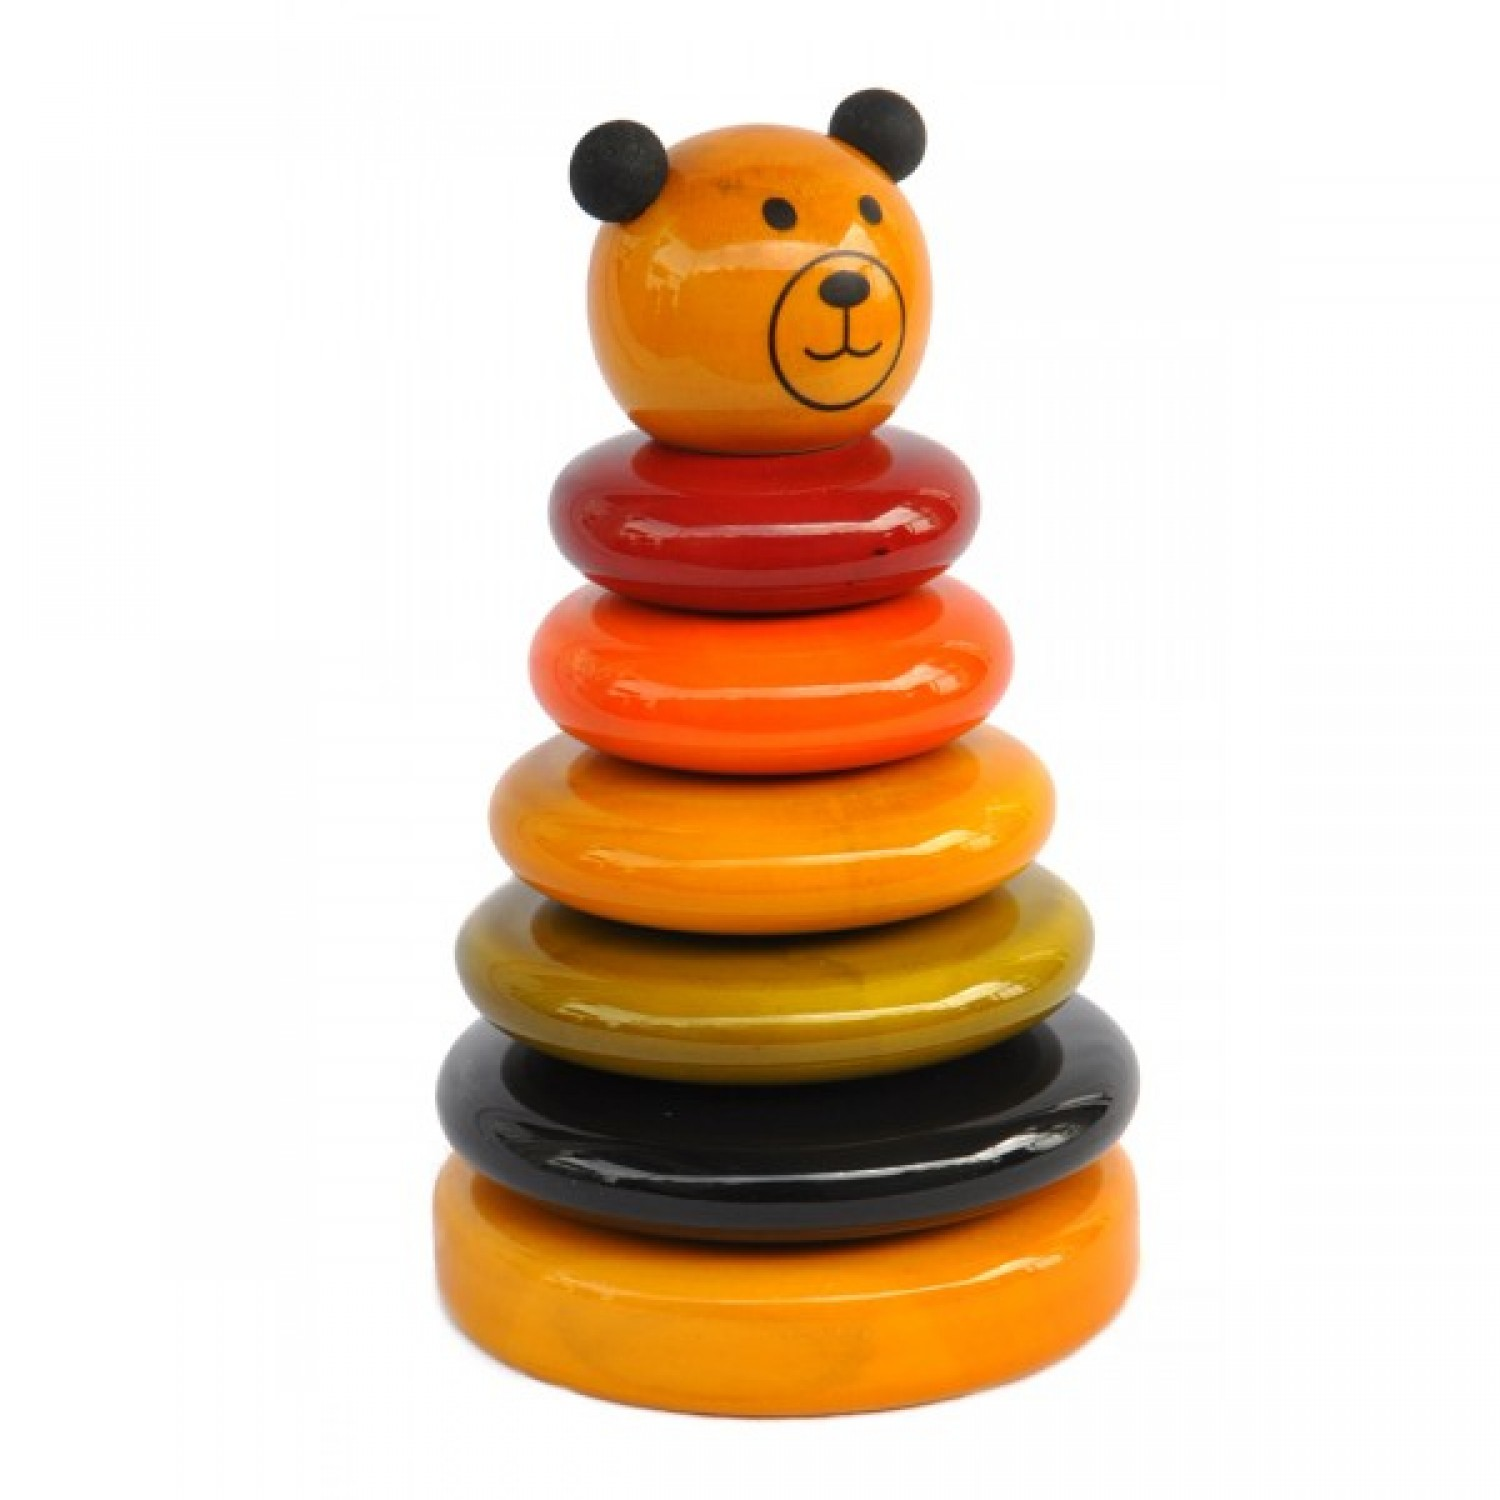 Cubby Eco Wooden Toy by Maya Organic